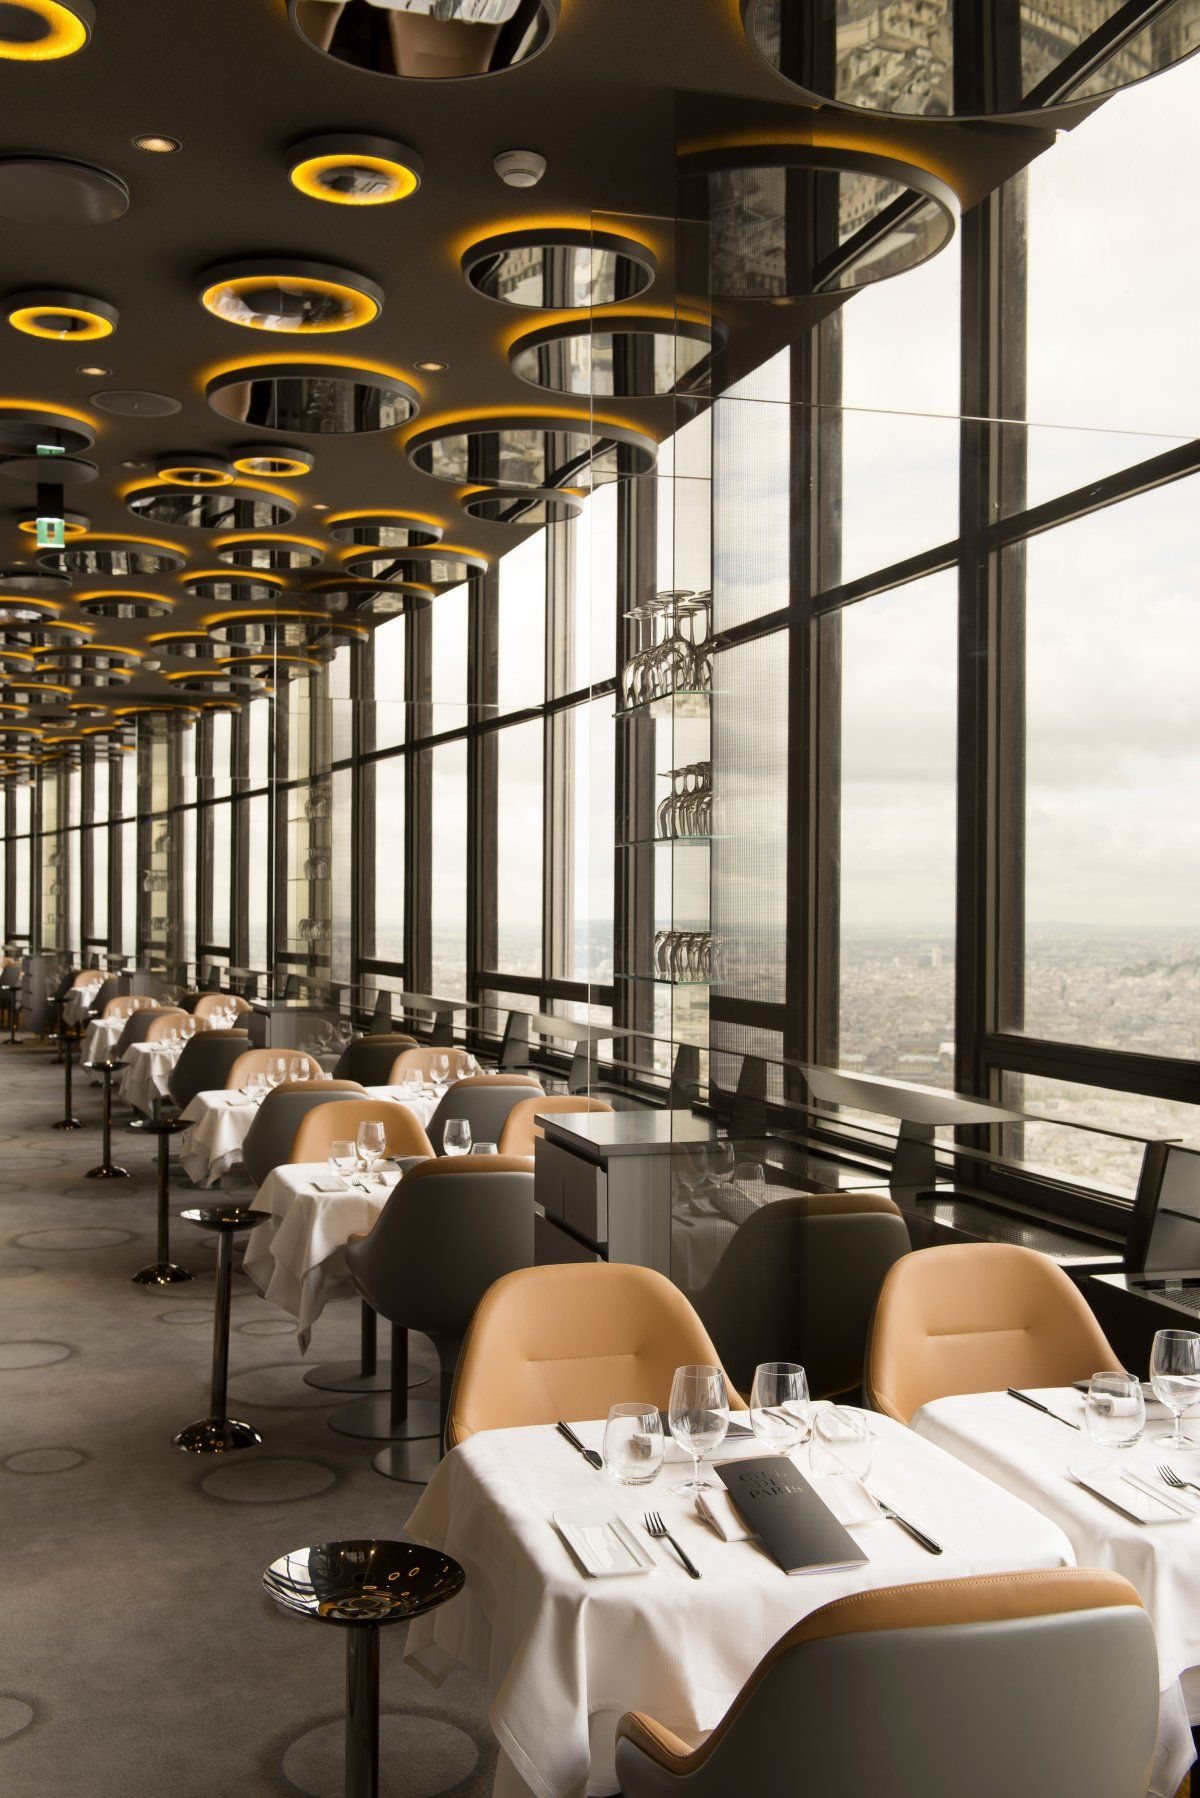 Restaurante Ciel De Paris Luxury Restaurant Paris Restaurants Restaurant Interior Design